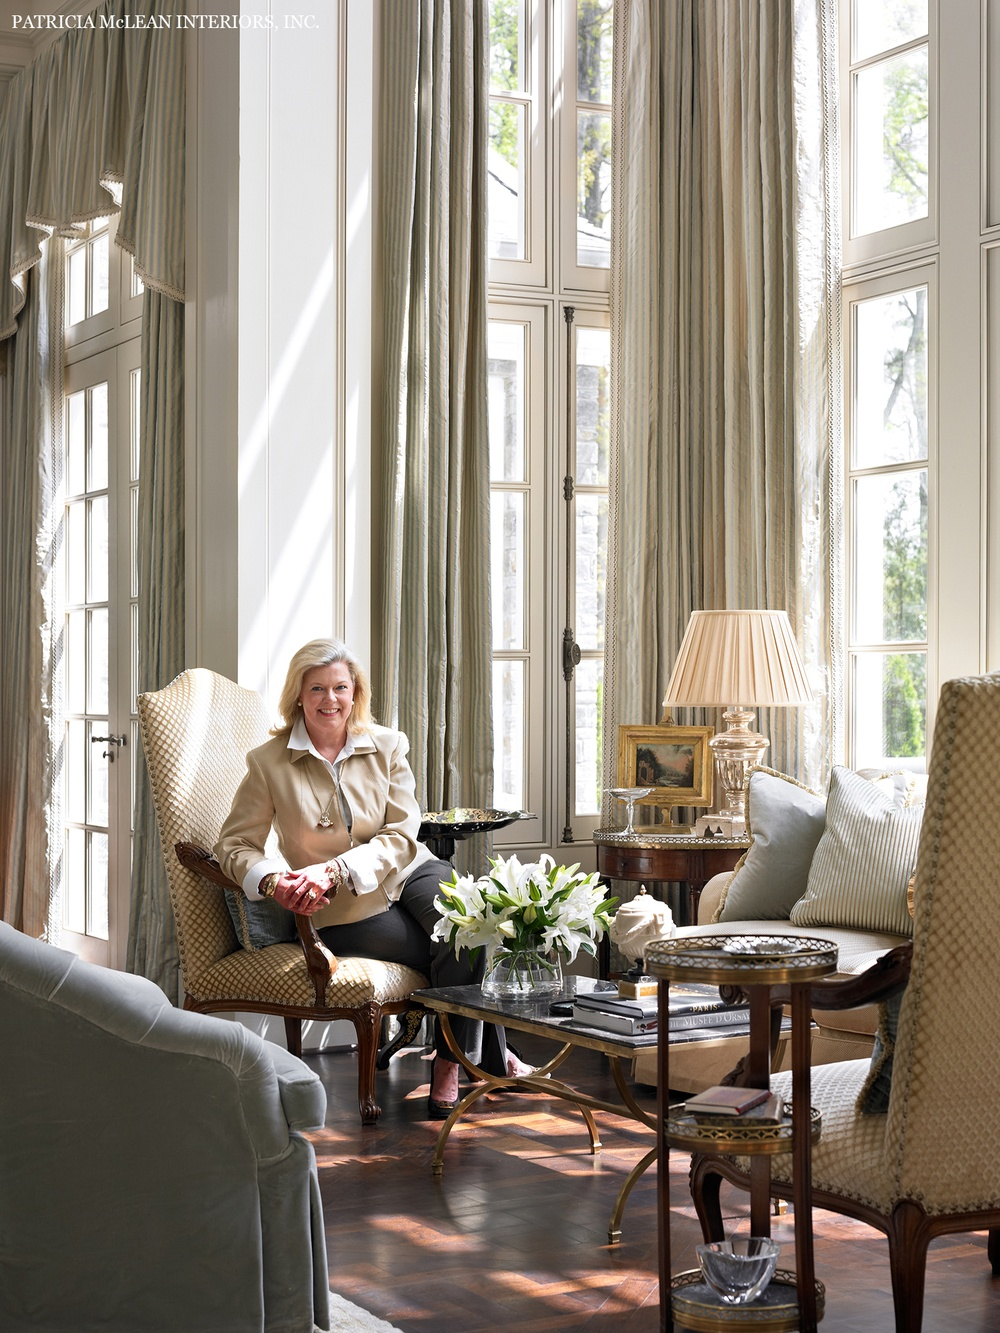 Asmara Designer Rugs Interview with Patricia McLean - Interior Designer